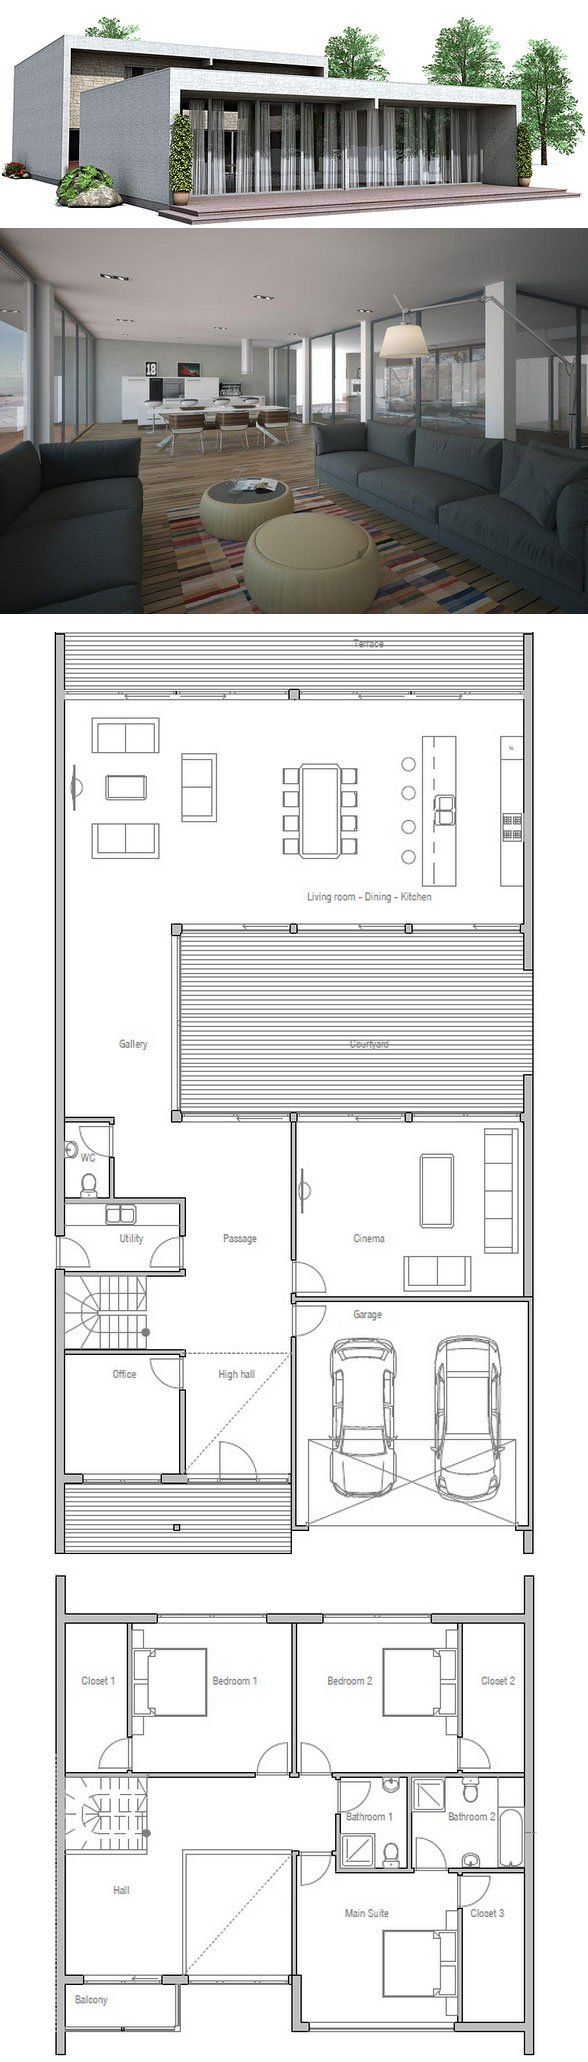 Minimalist House Design Plans best 25+ container house design ideas on pinterest | container